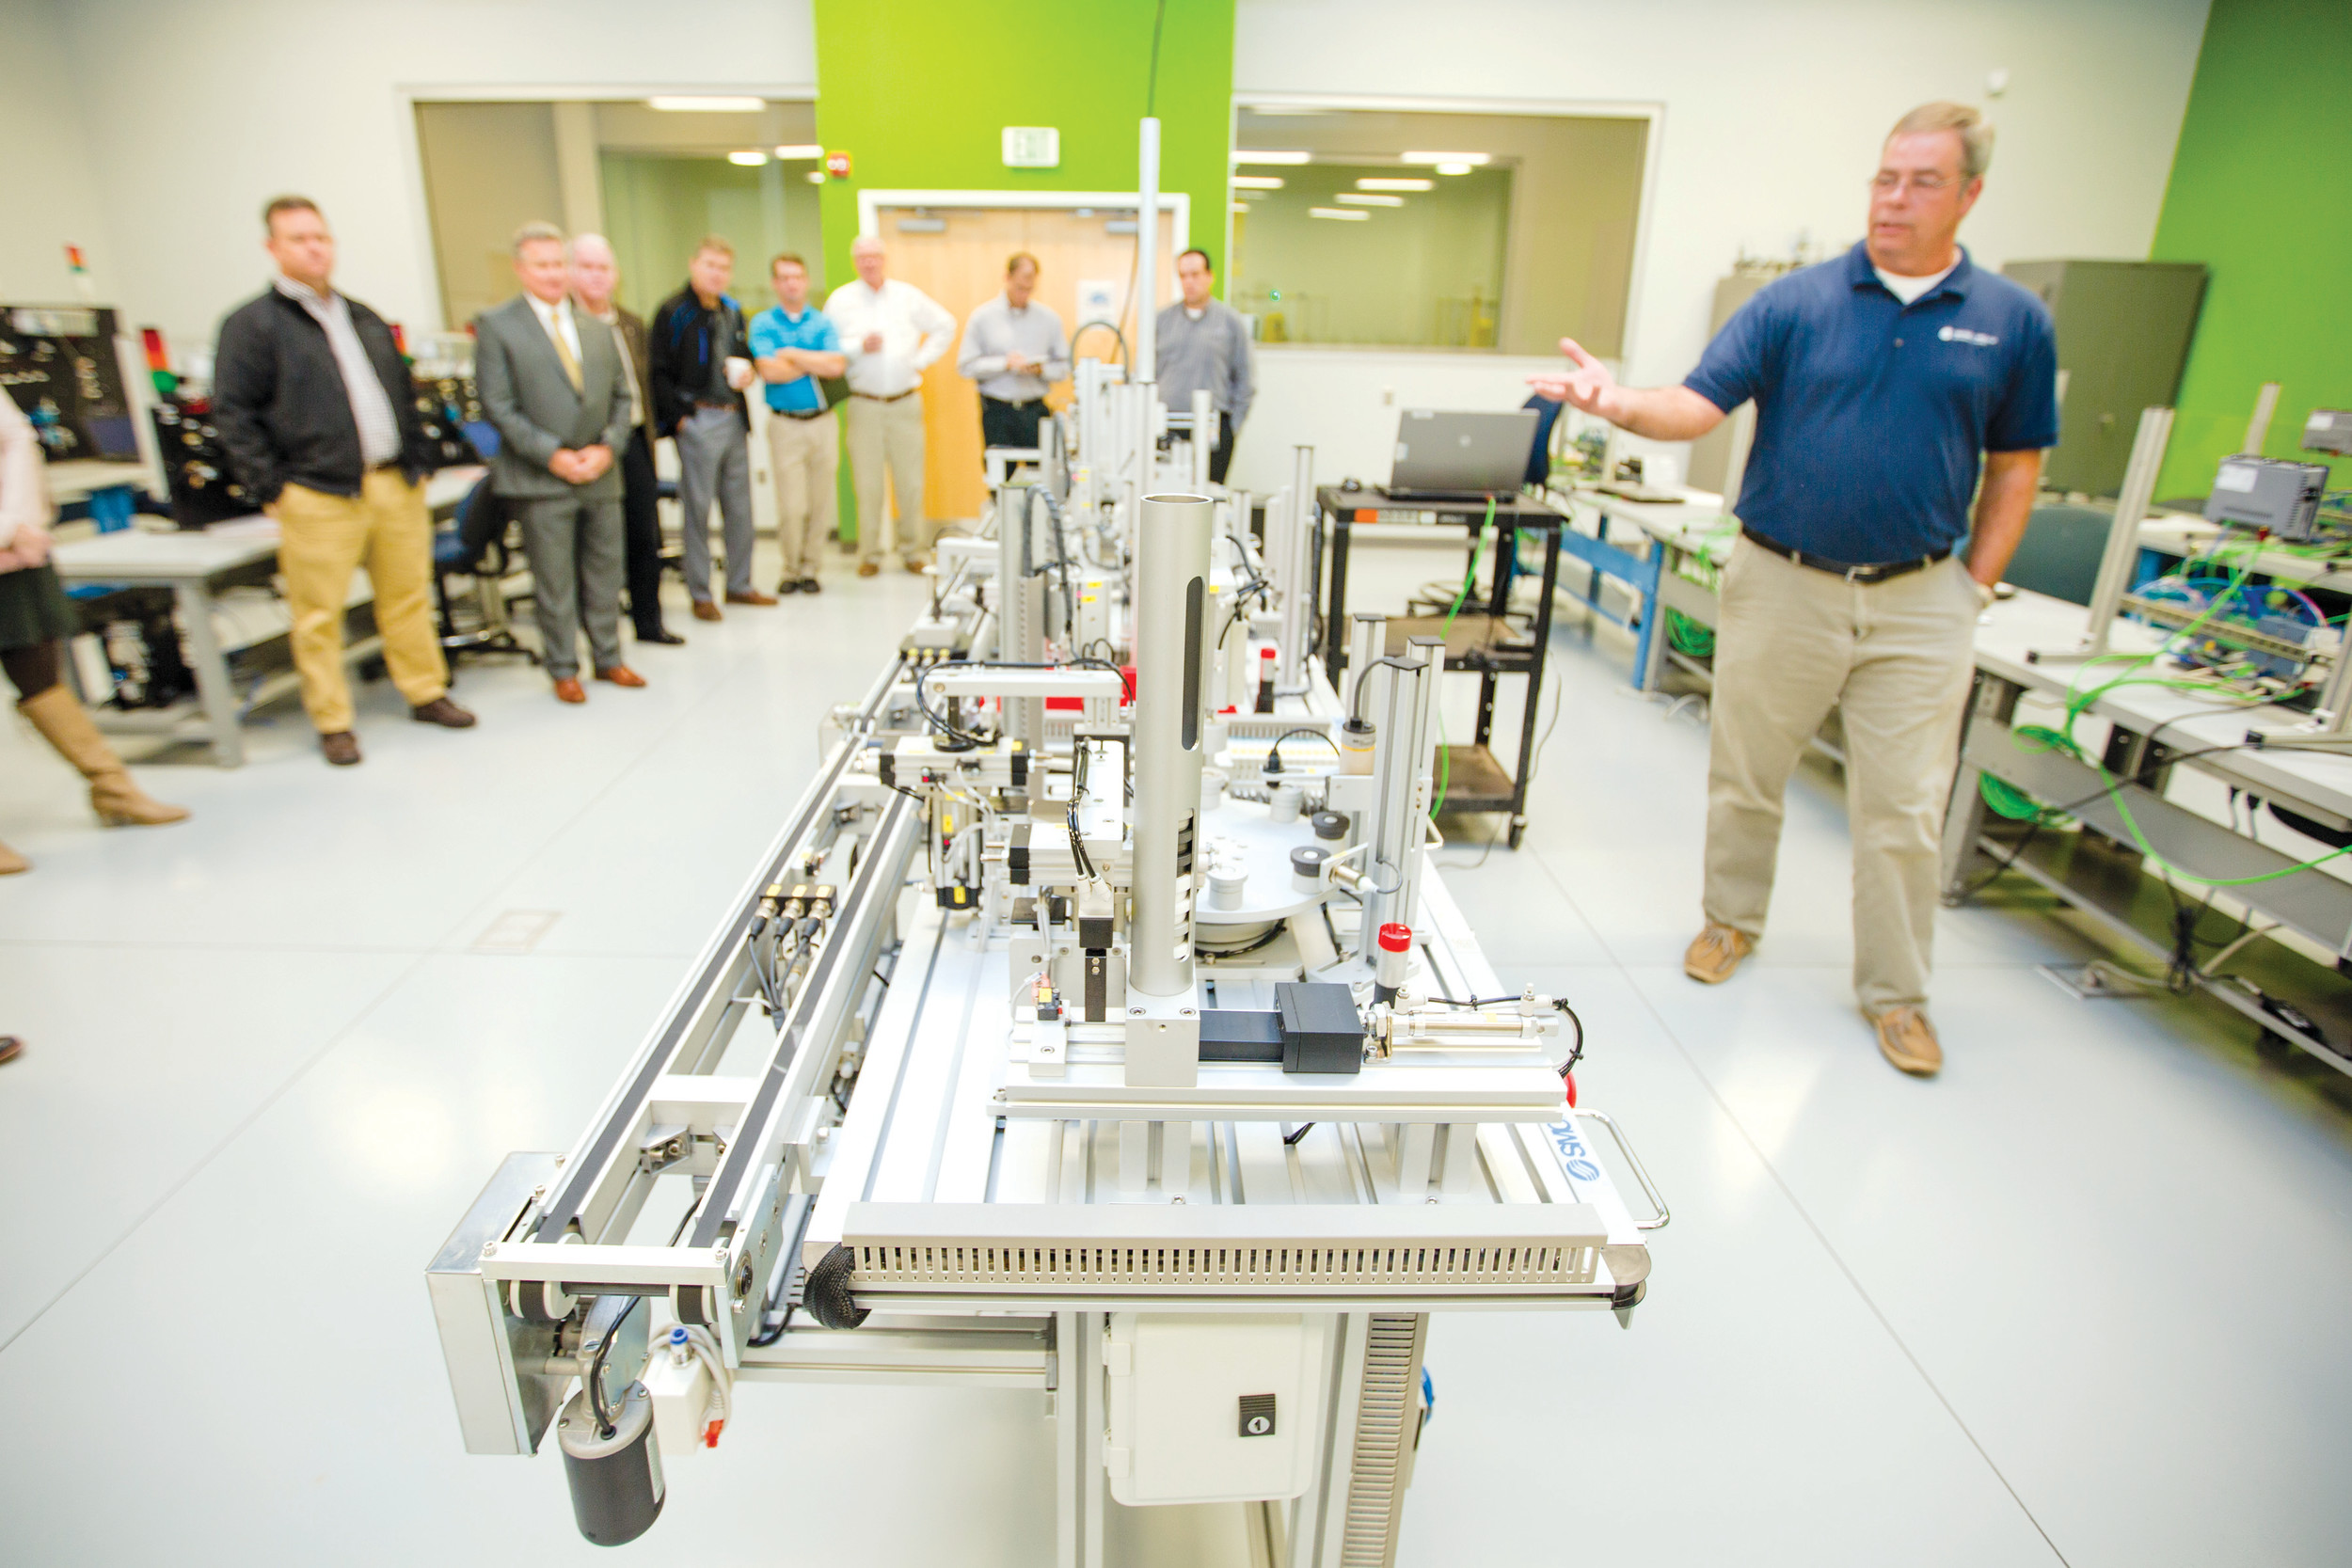 Bert Hancock, academic program manager for Mechatronics at Central Carolina Technical College, shows off the college's new four-stage, flexible manufacturing system recently to industrial and community leaders.